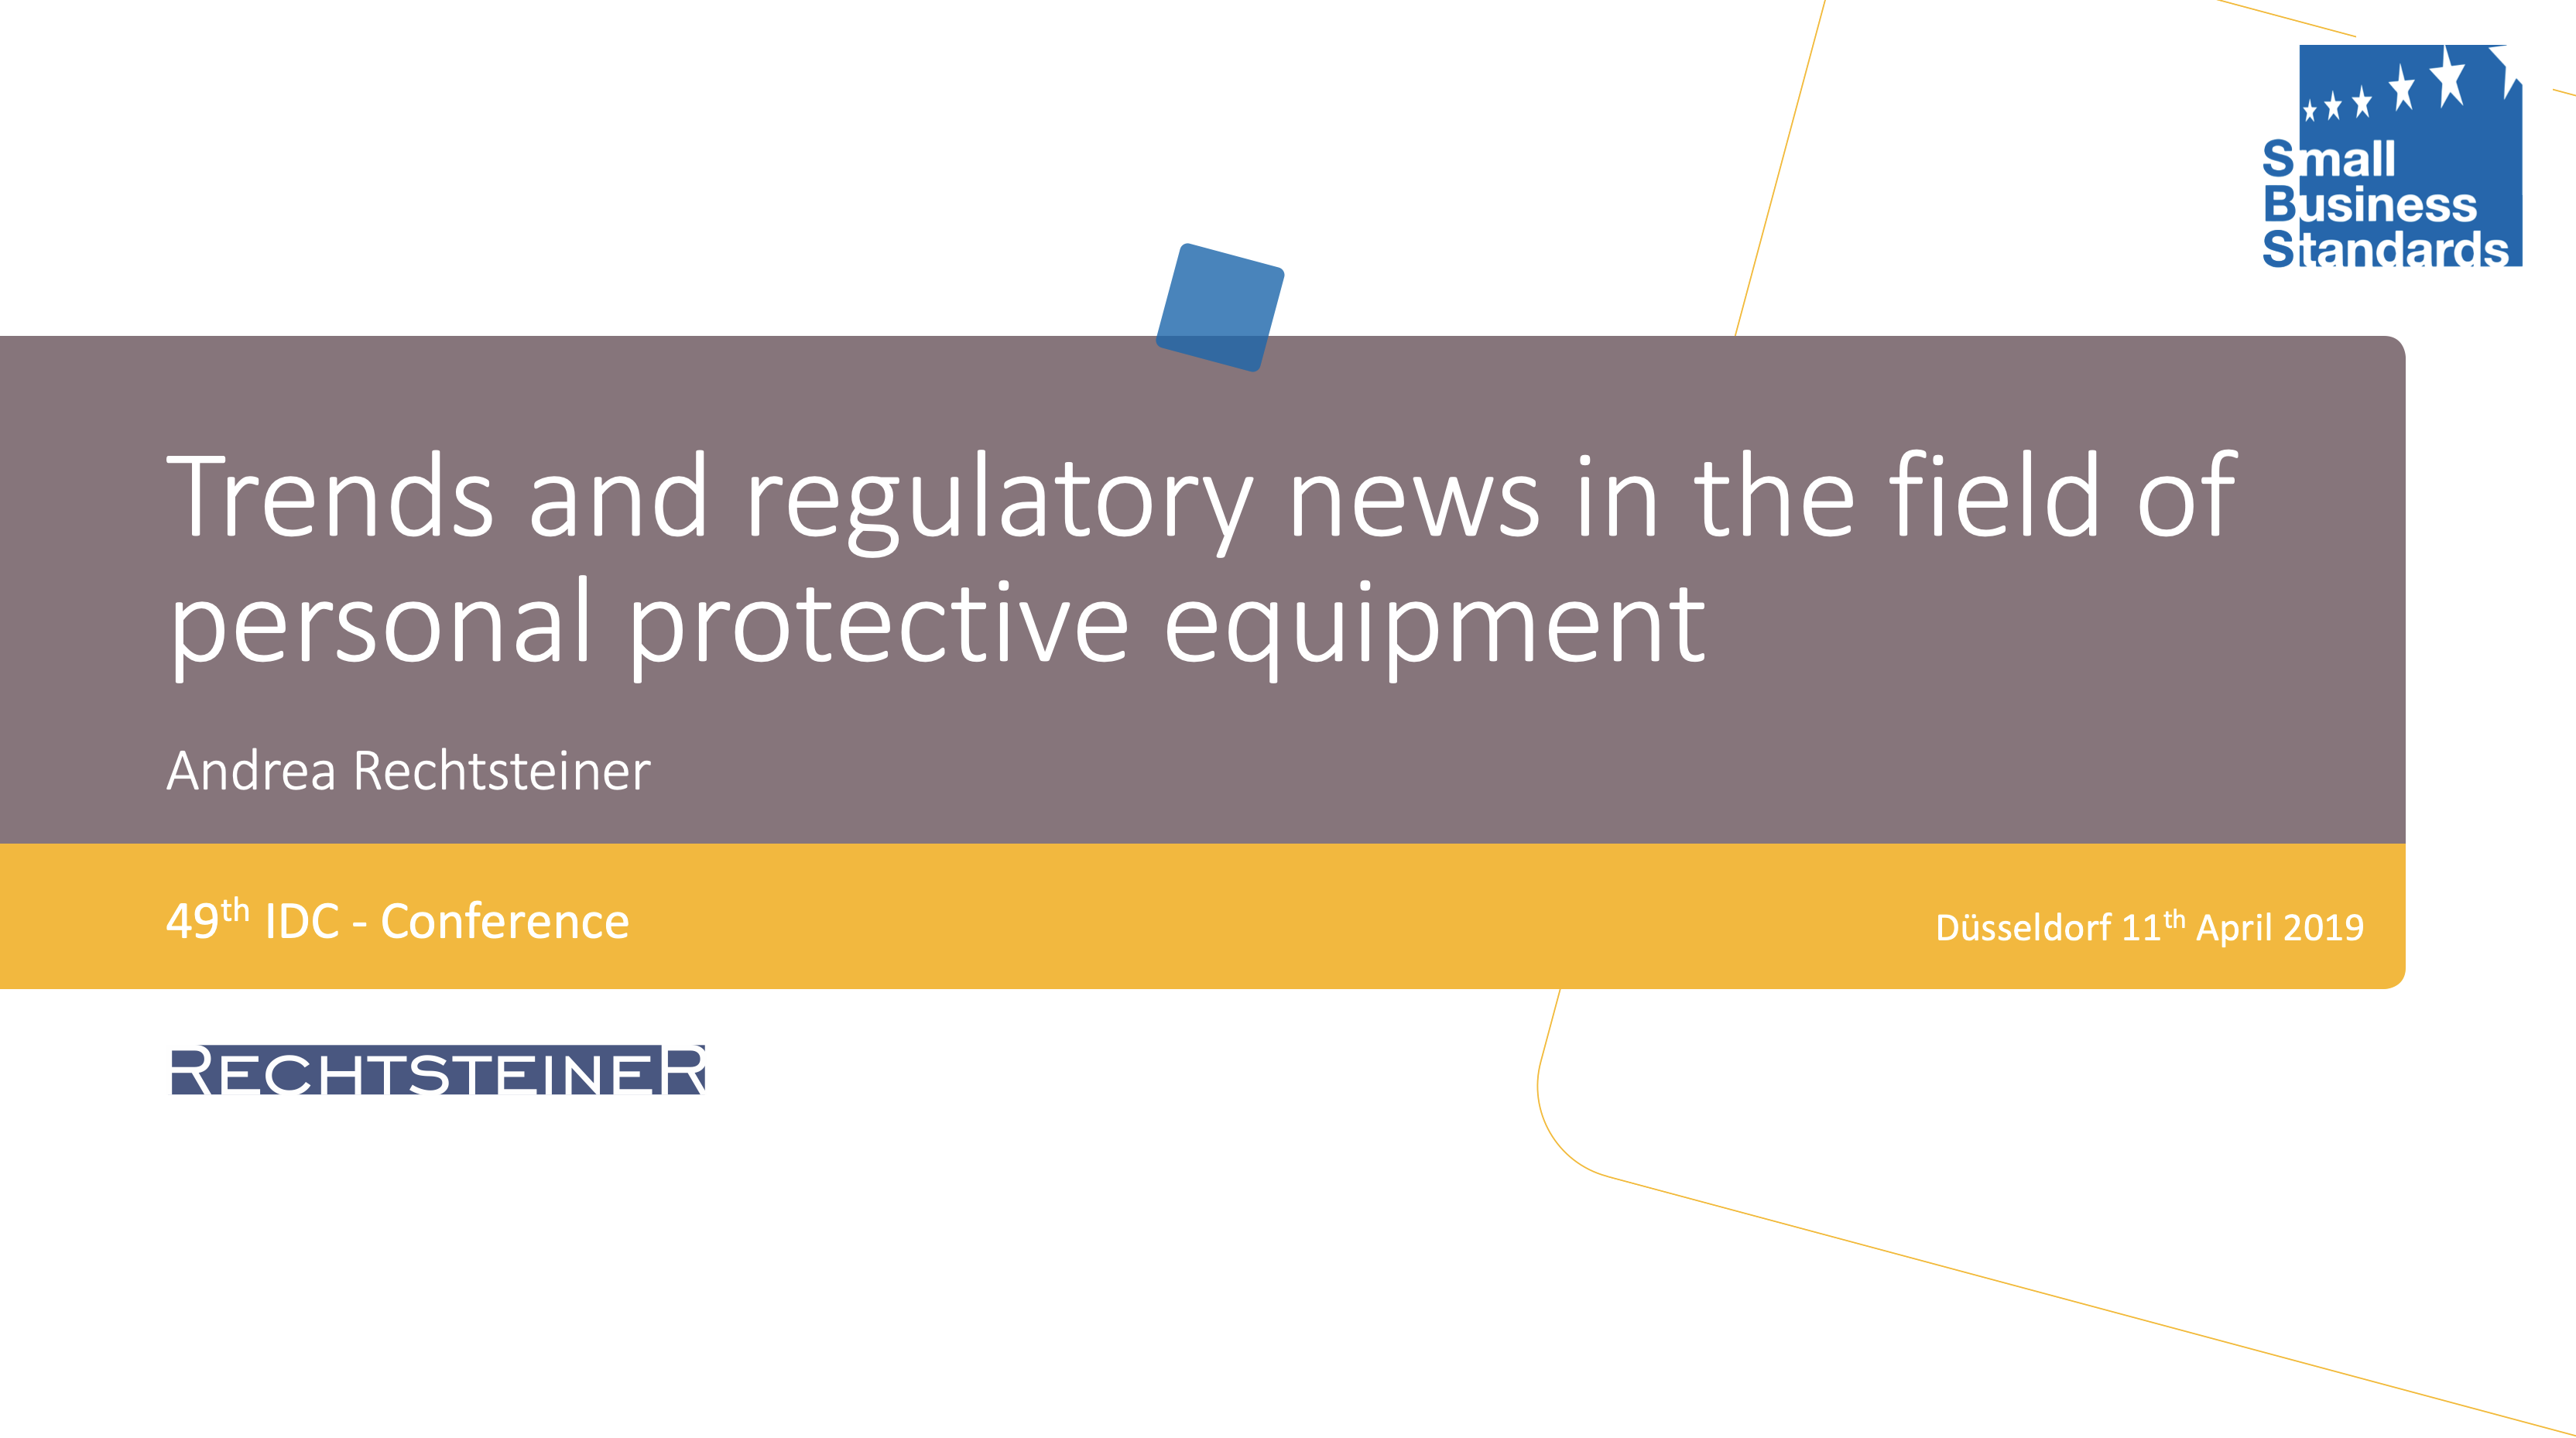 Trends and regulatory news in the field of personal protective equipment